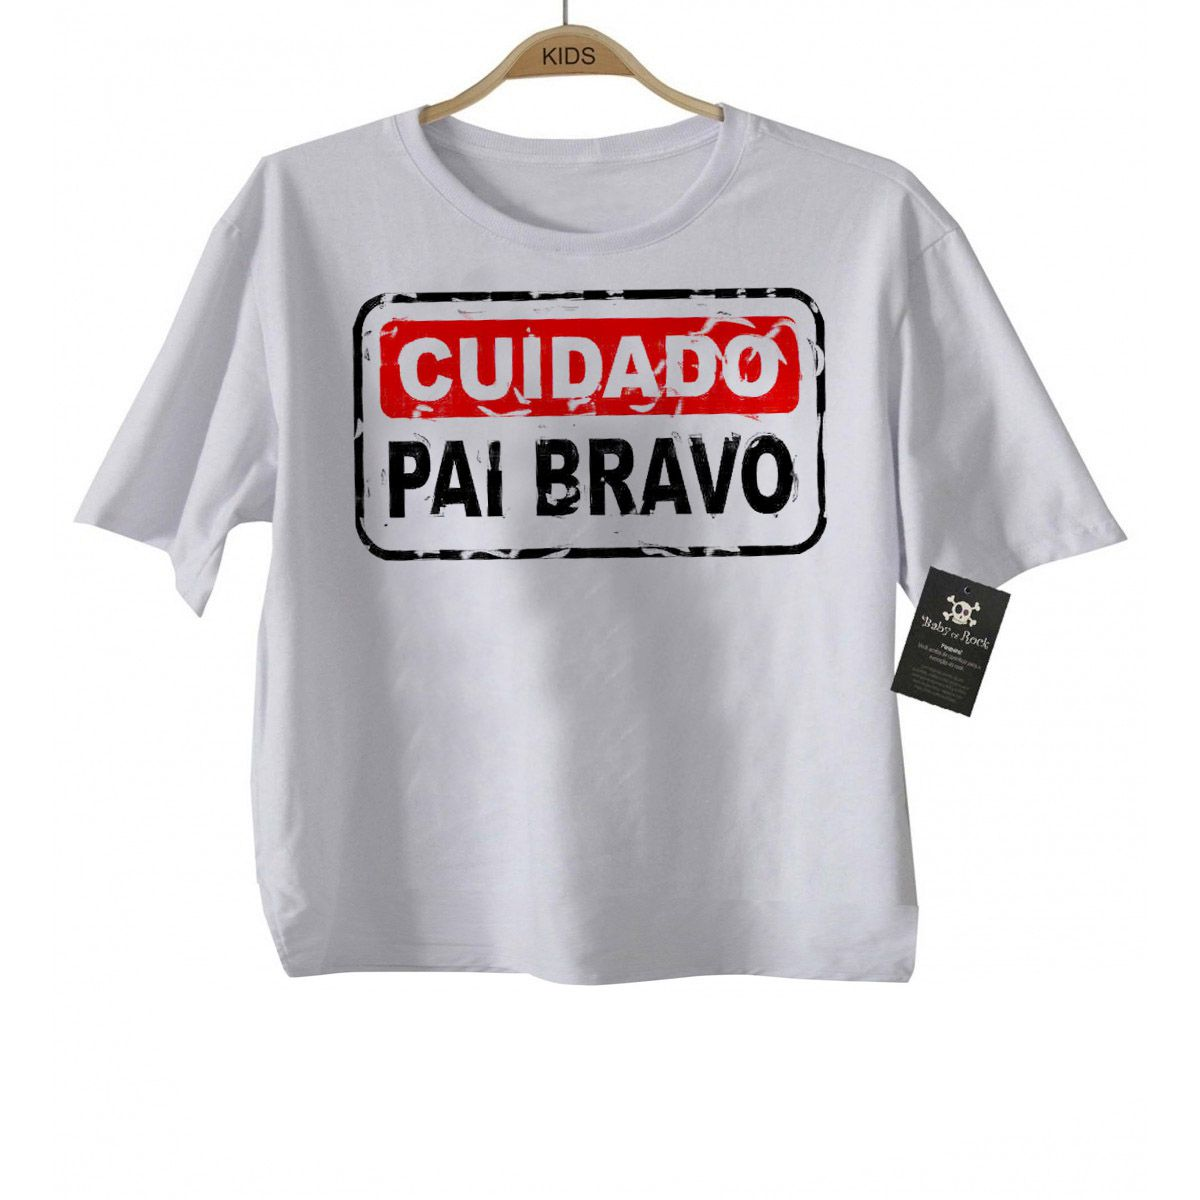 Camiseta Divertida  - Cuidado Pai Bravo- White  - Baby Monster S/A